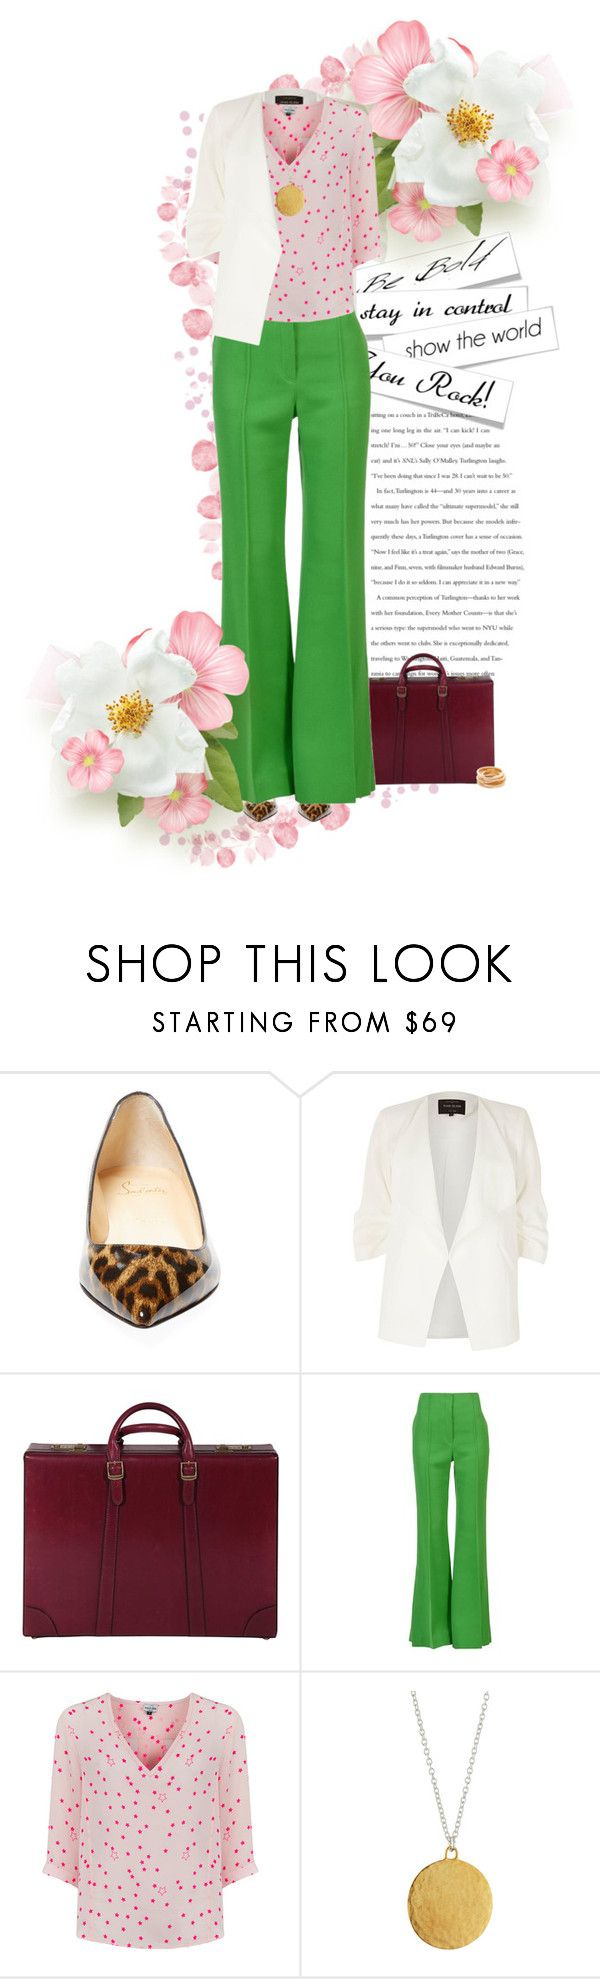 """""""Job Interview"""" by dawn-scott ❤ liked on Polyvore featuring Christian Louboutin, River Island, Gucci, CÉLINE, Mercy Delta, Gurhan and Kenneth Jay Lane"""